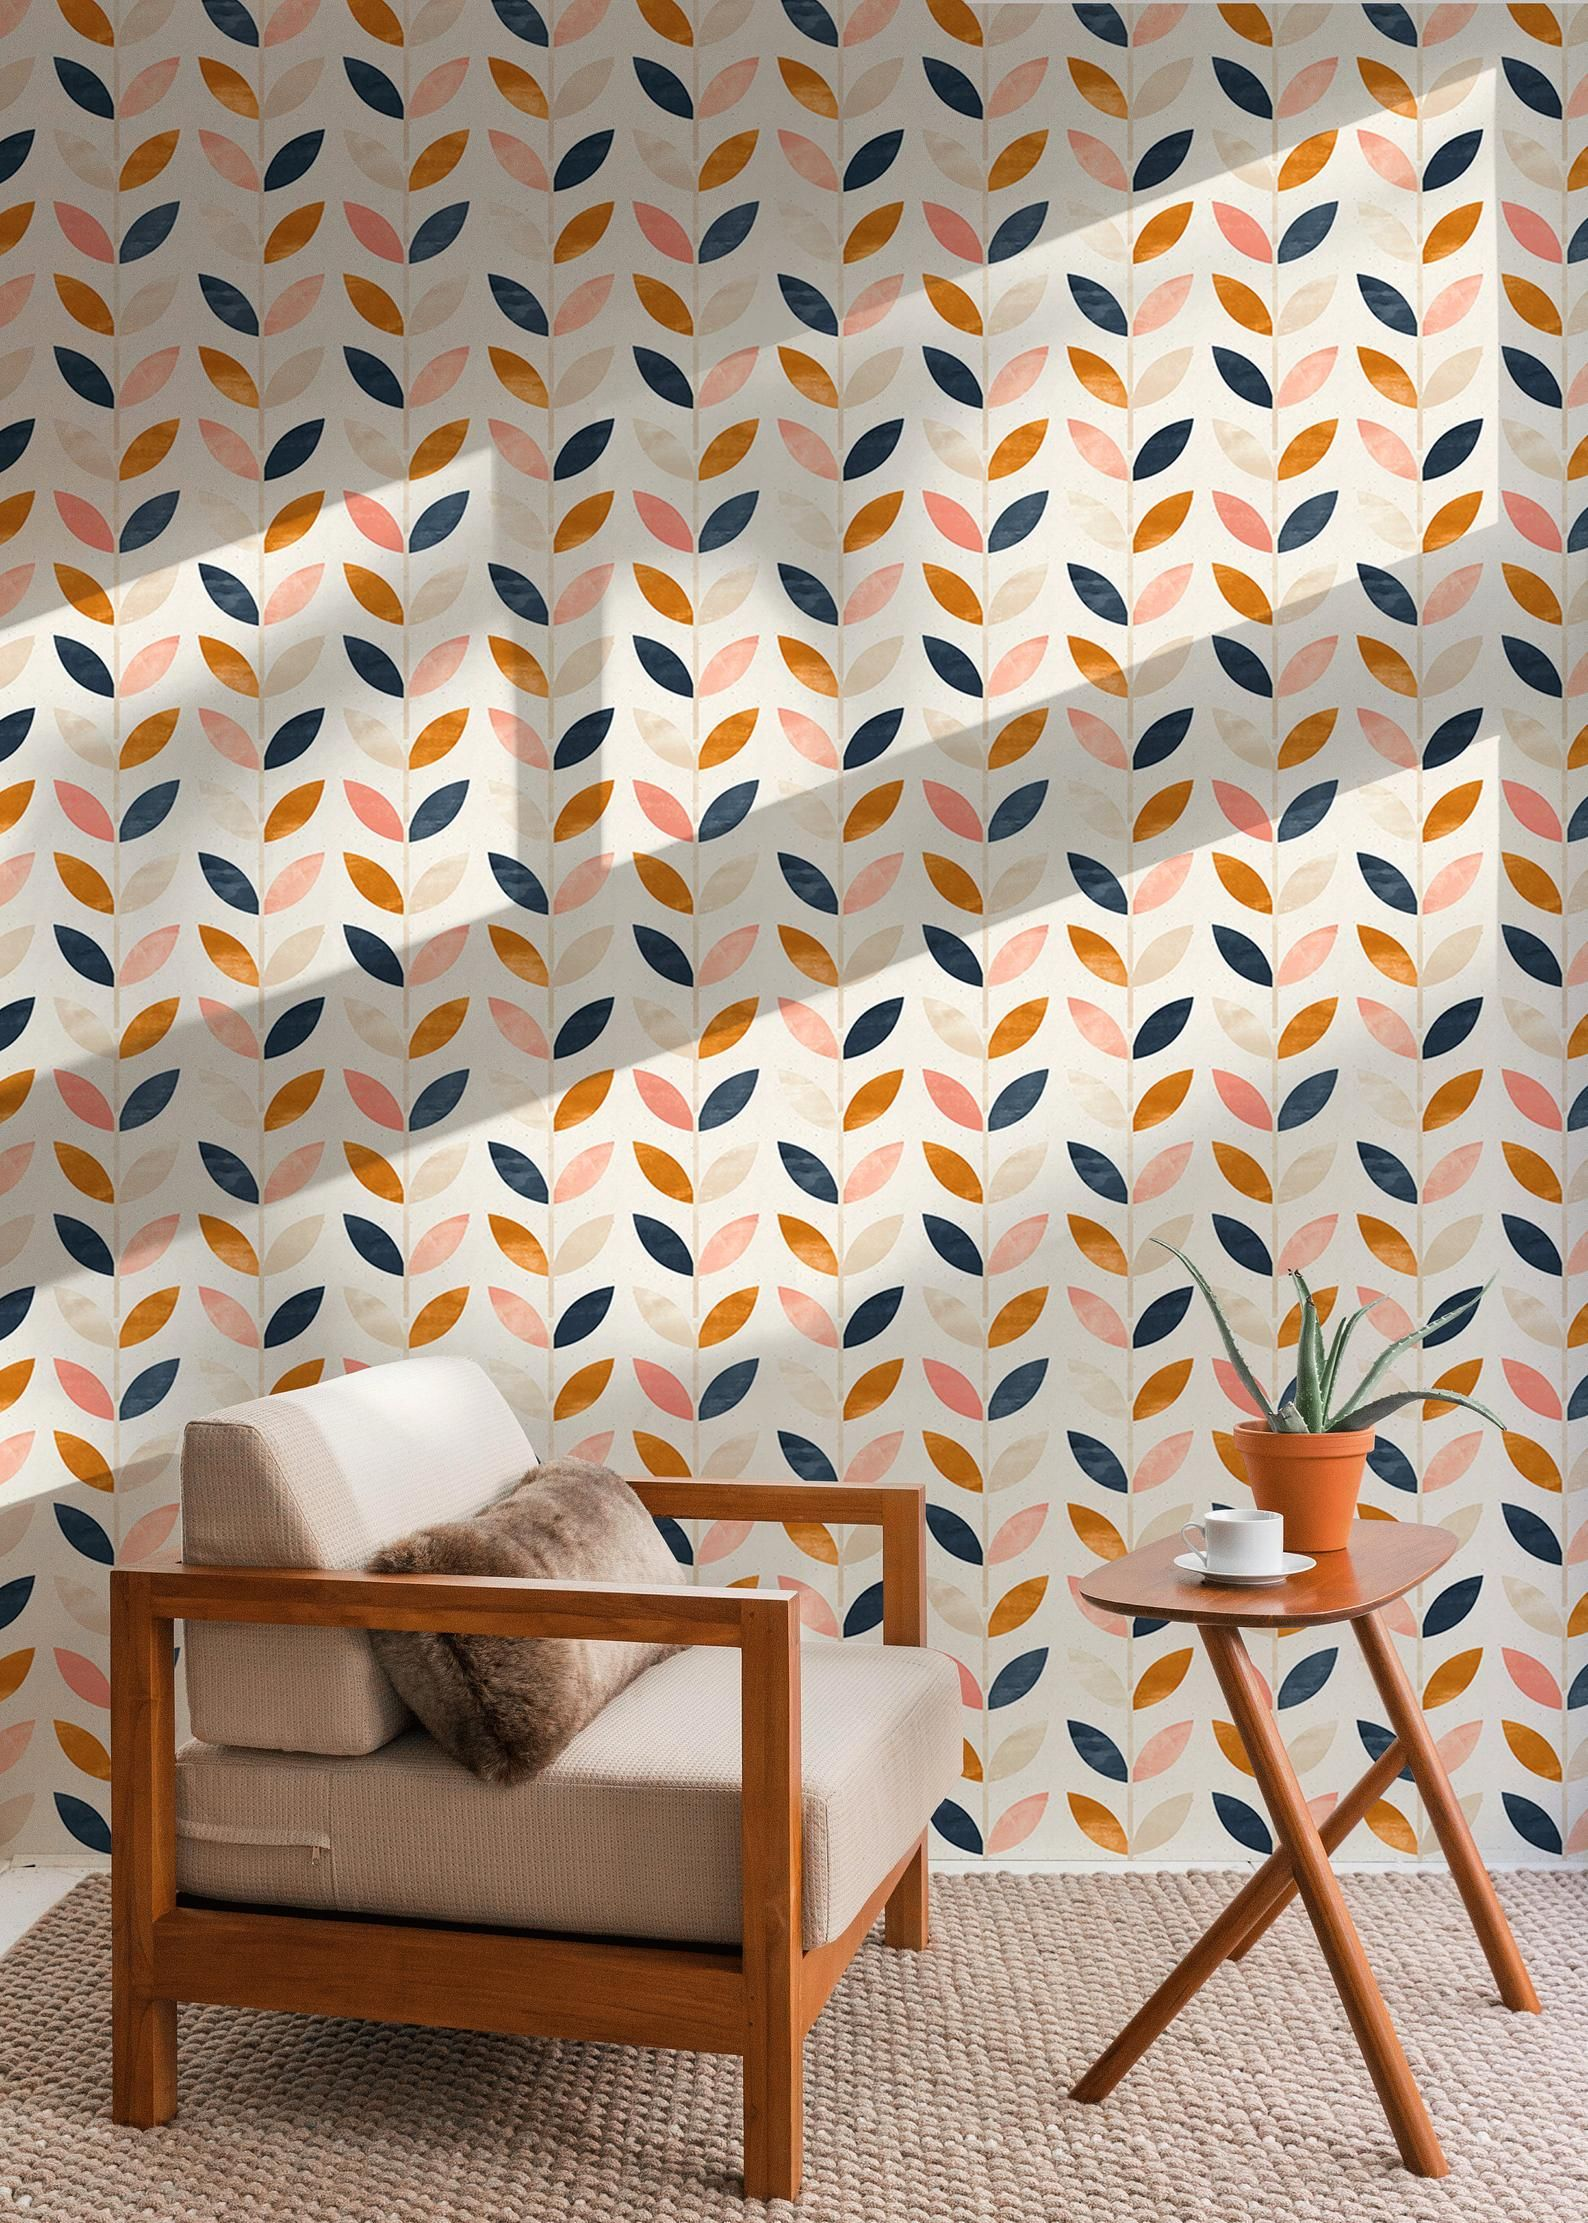 Vintage Style Peel And Stick Wallpaper